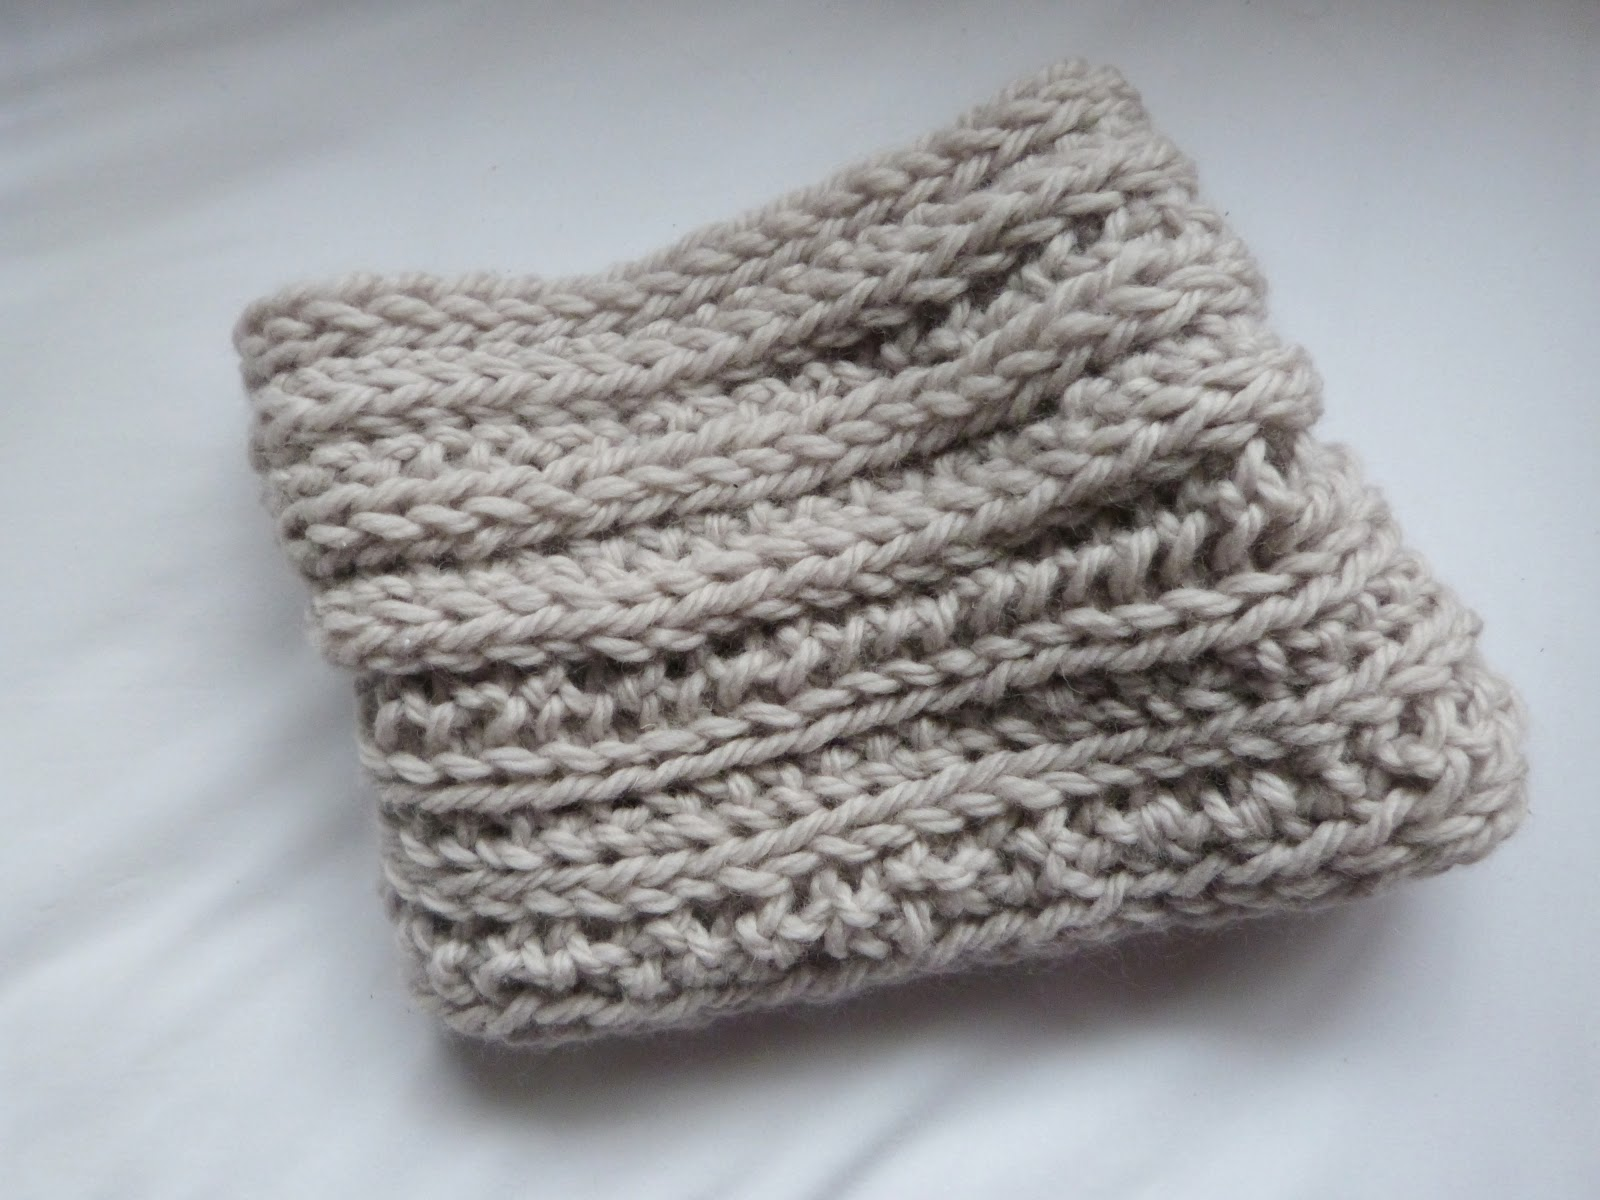 Knitting Needles No : Trends with benefits no needles knitting diy snood